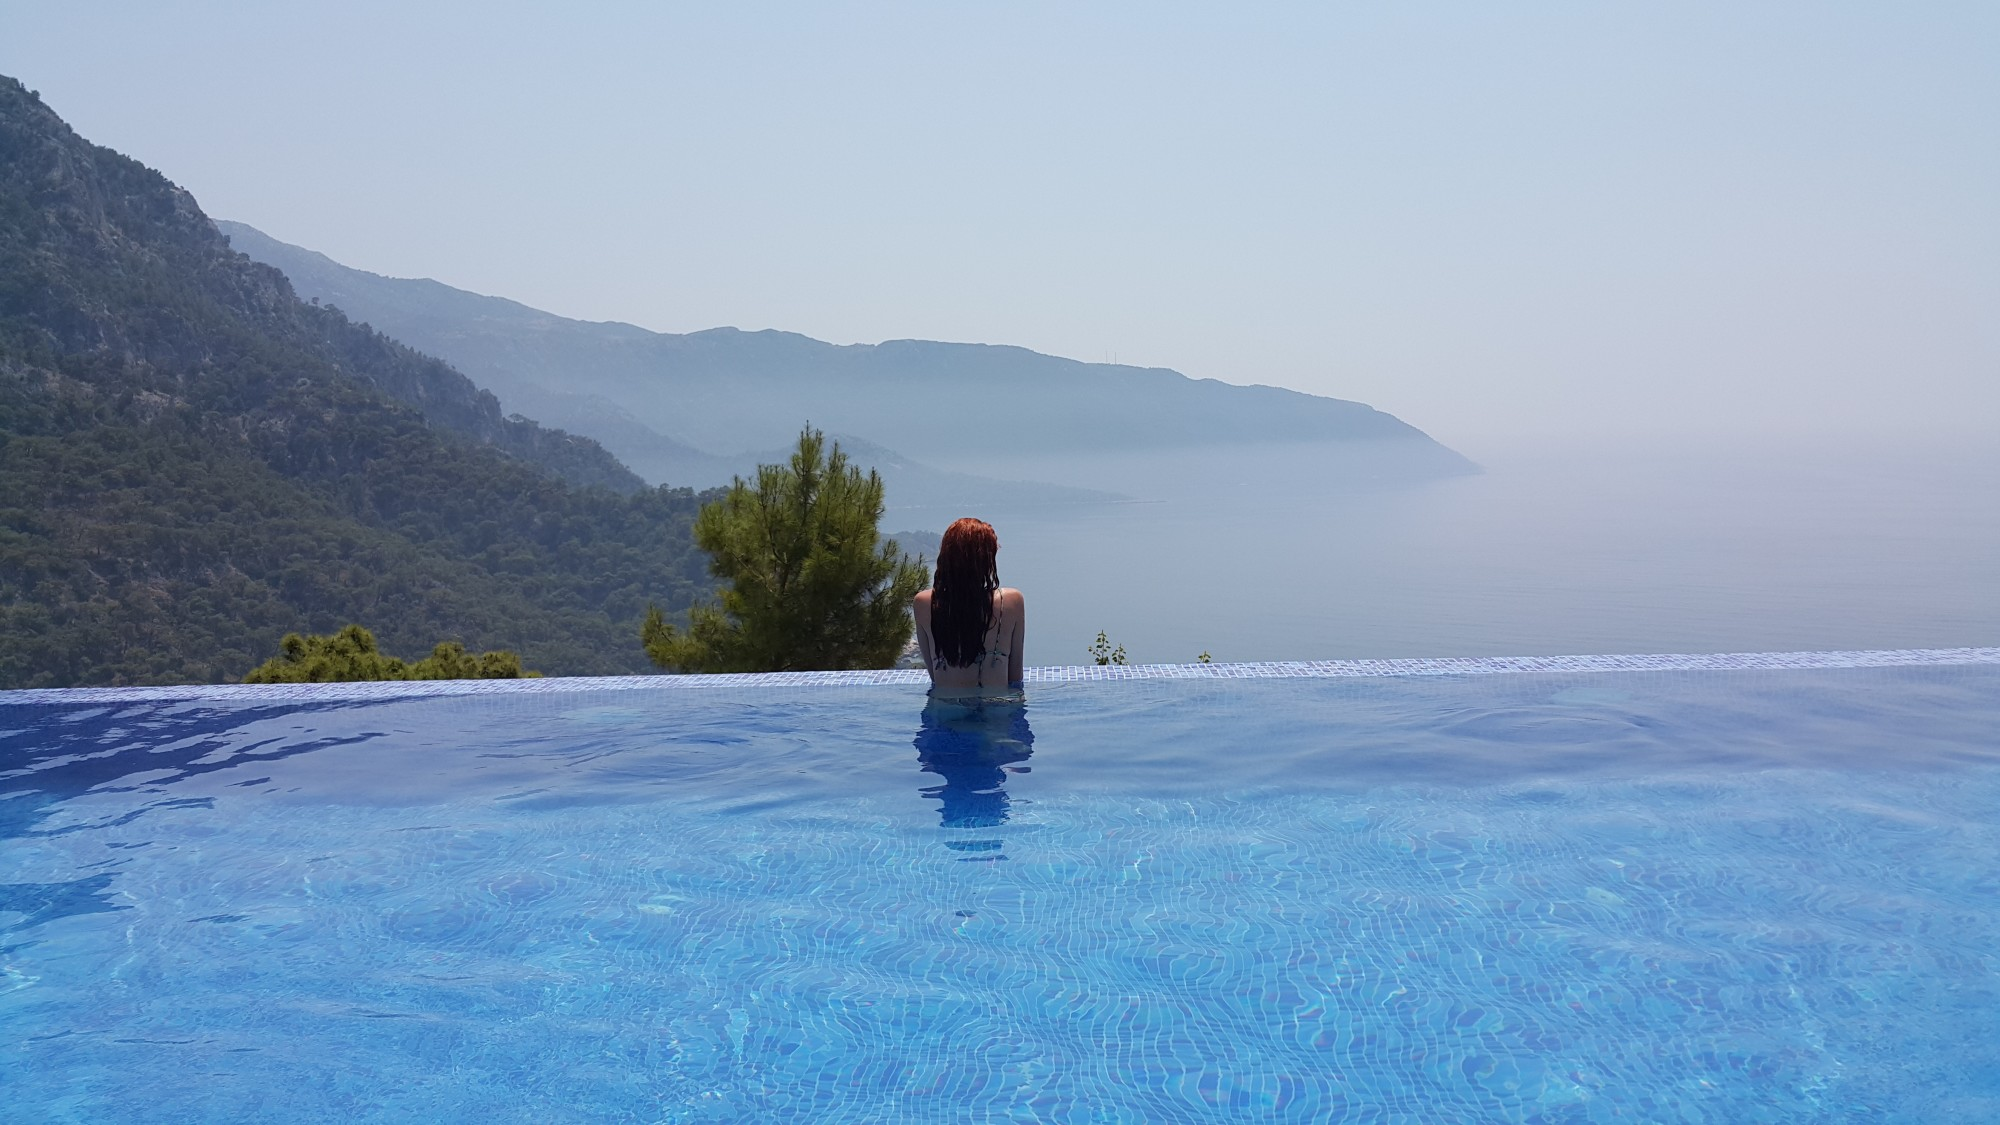 Endless Pools Provide Endless Health Benefits: How to Use an Endless Pool for Healthy-Living